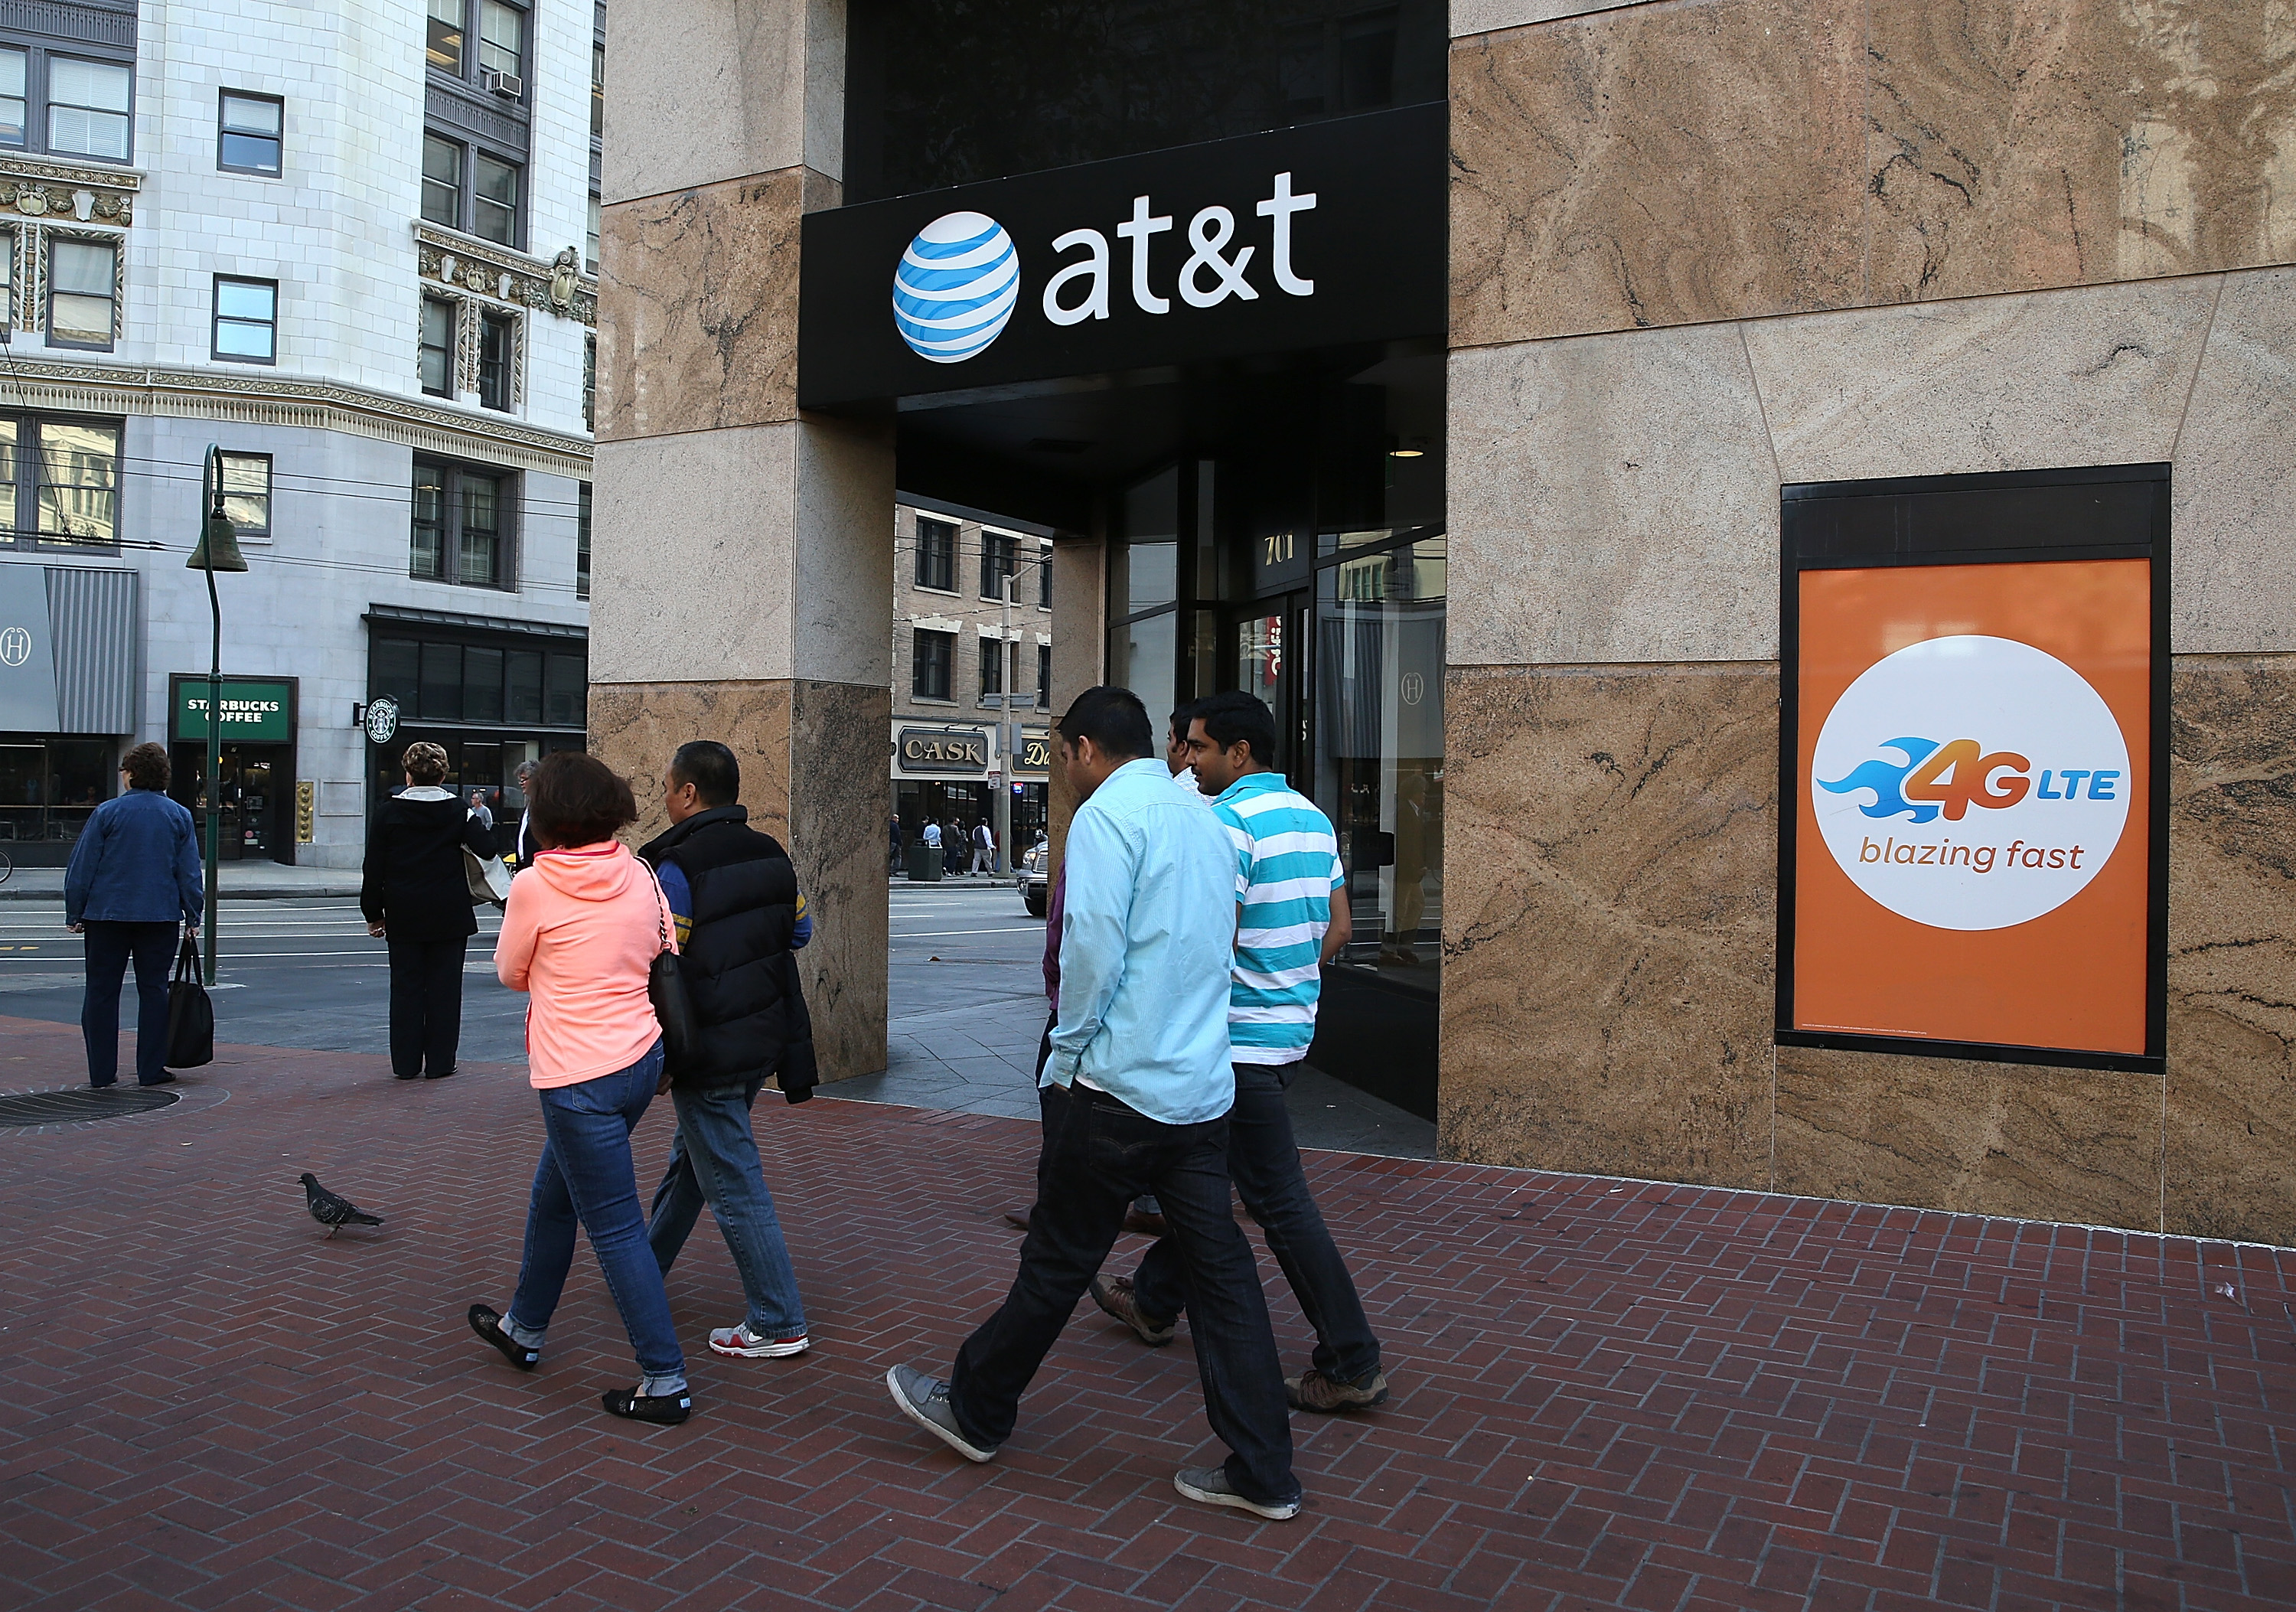 People walk by an AT&T store in San Francisco. (Getty)